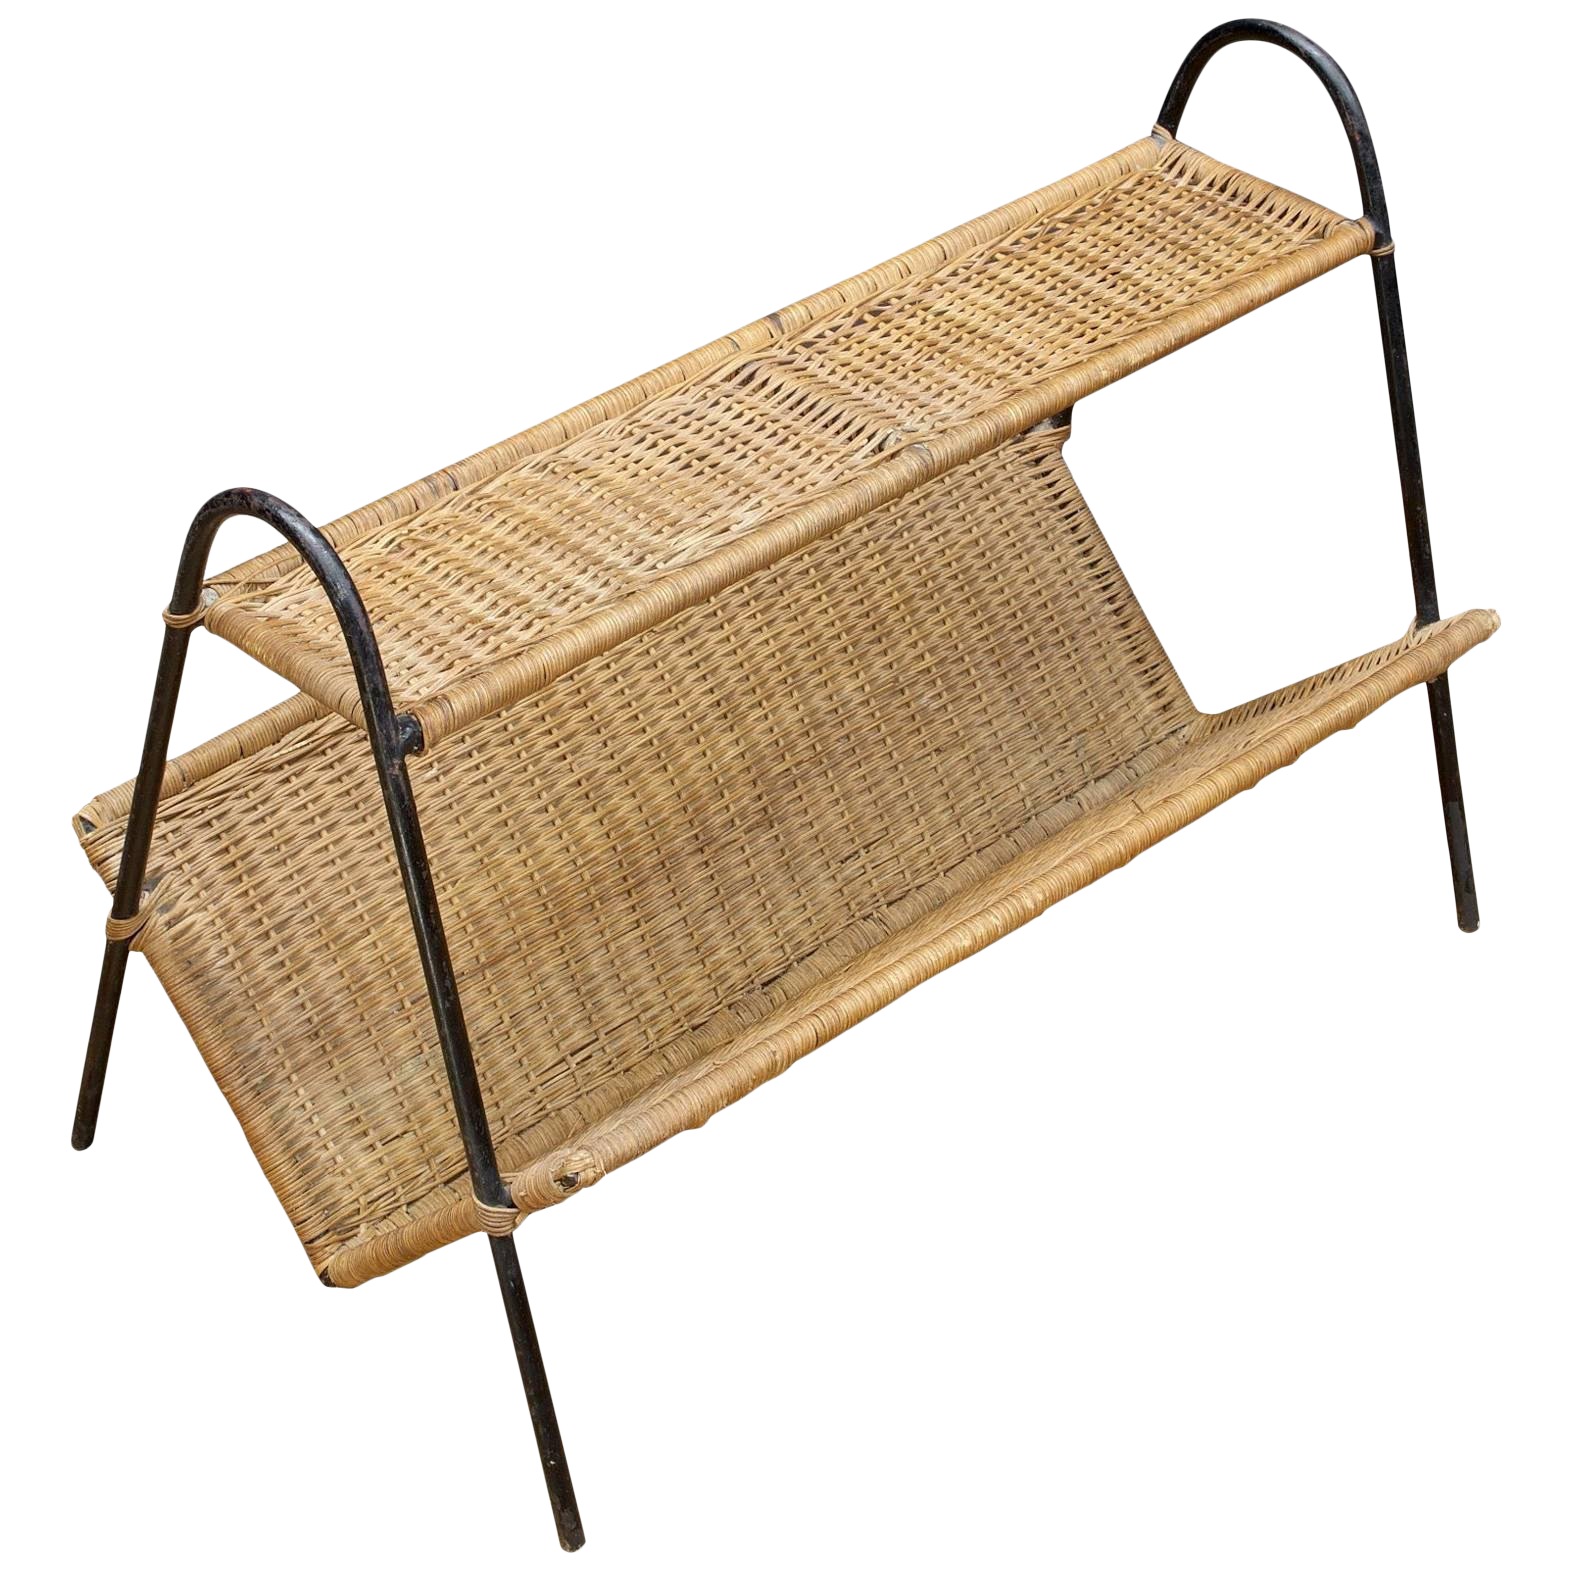 Iron clipart book rack. Rattan magazine shelf mid